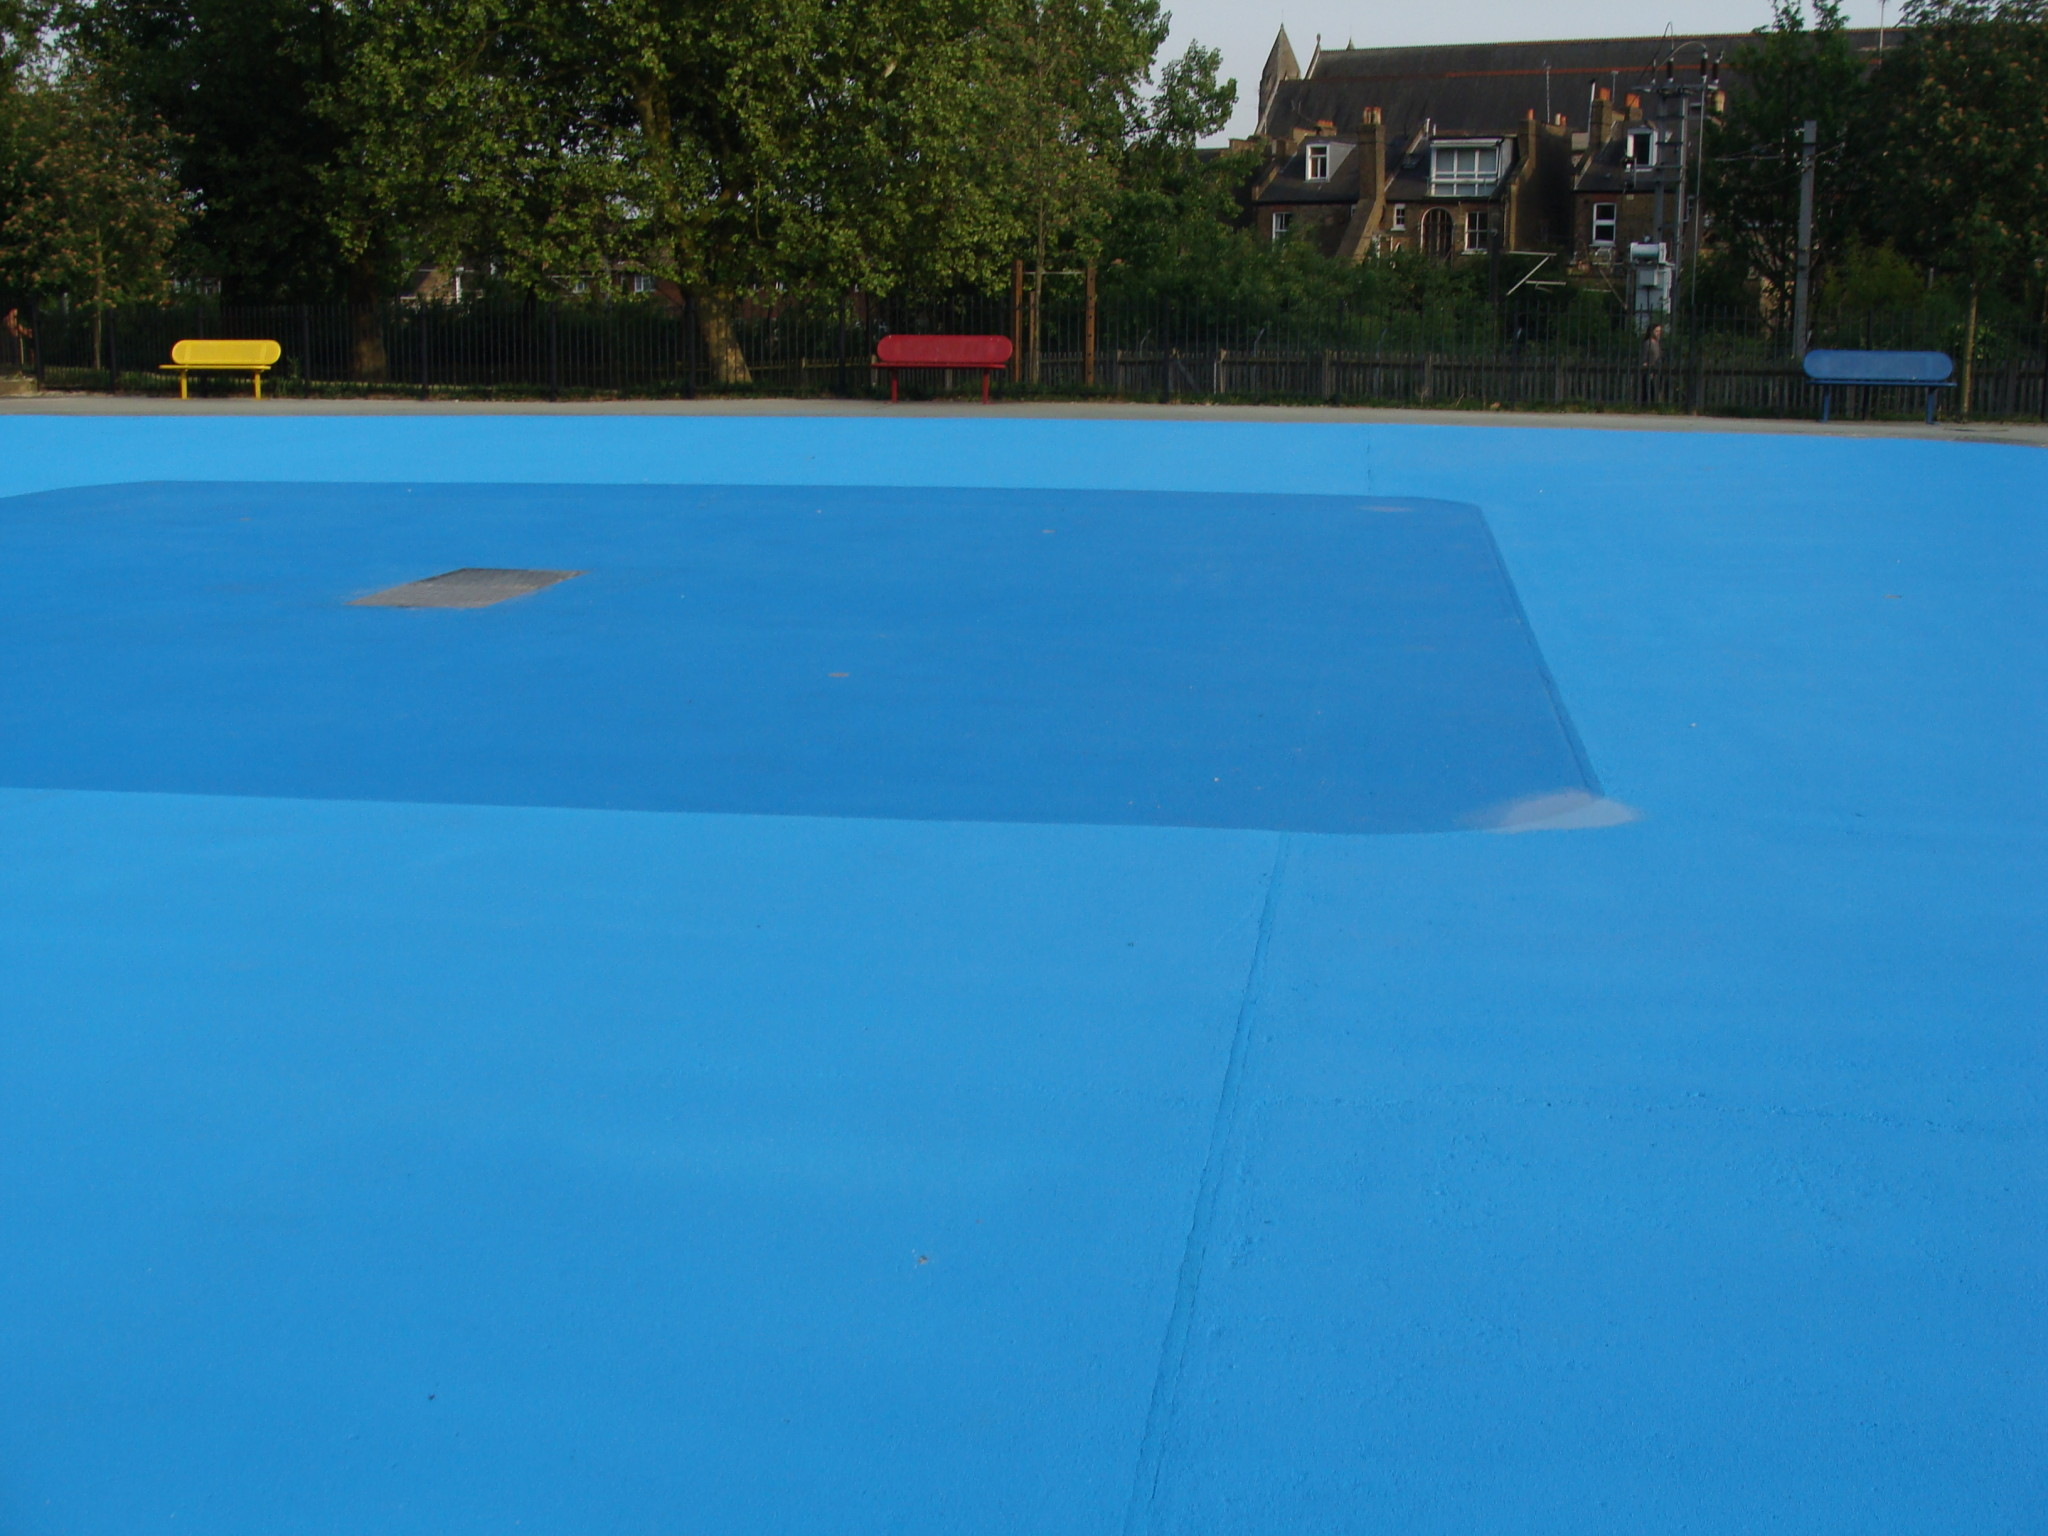 Paddling Pool Surfacing Resin Bound Surfaces For